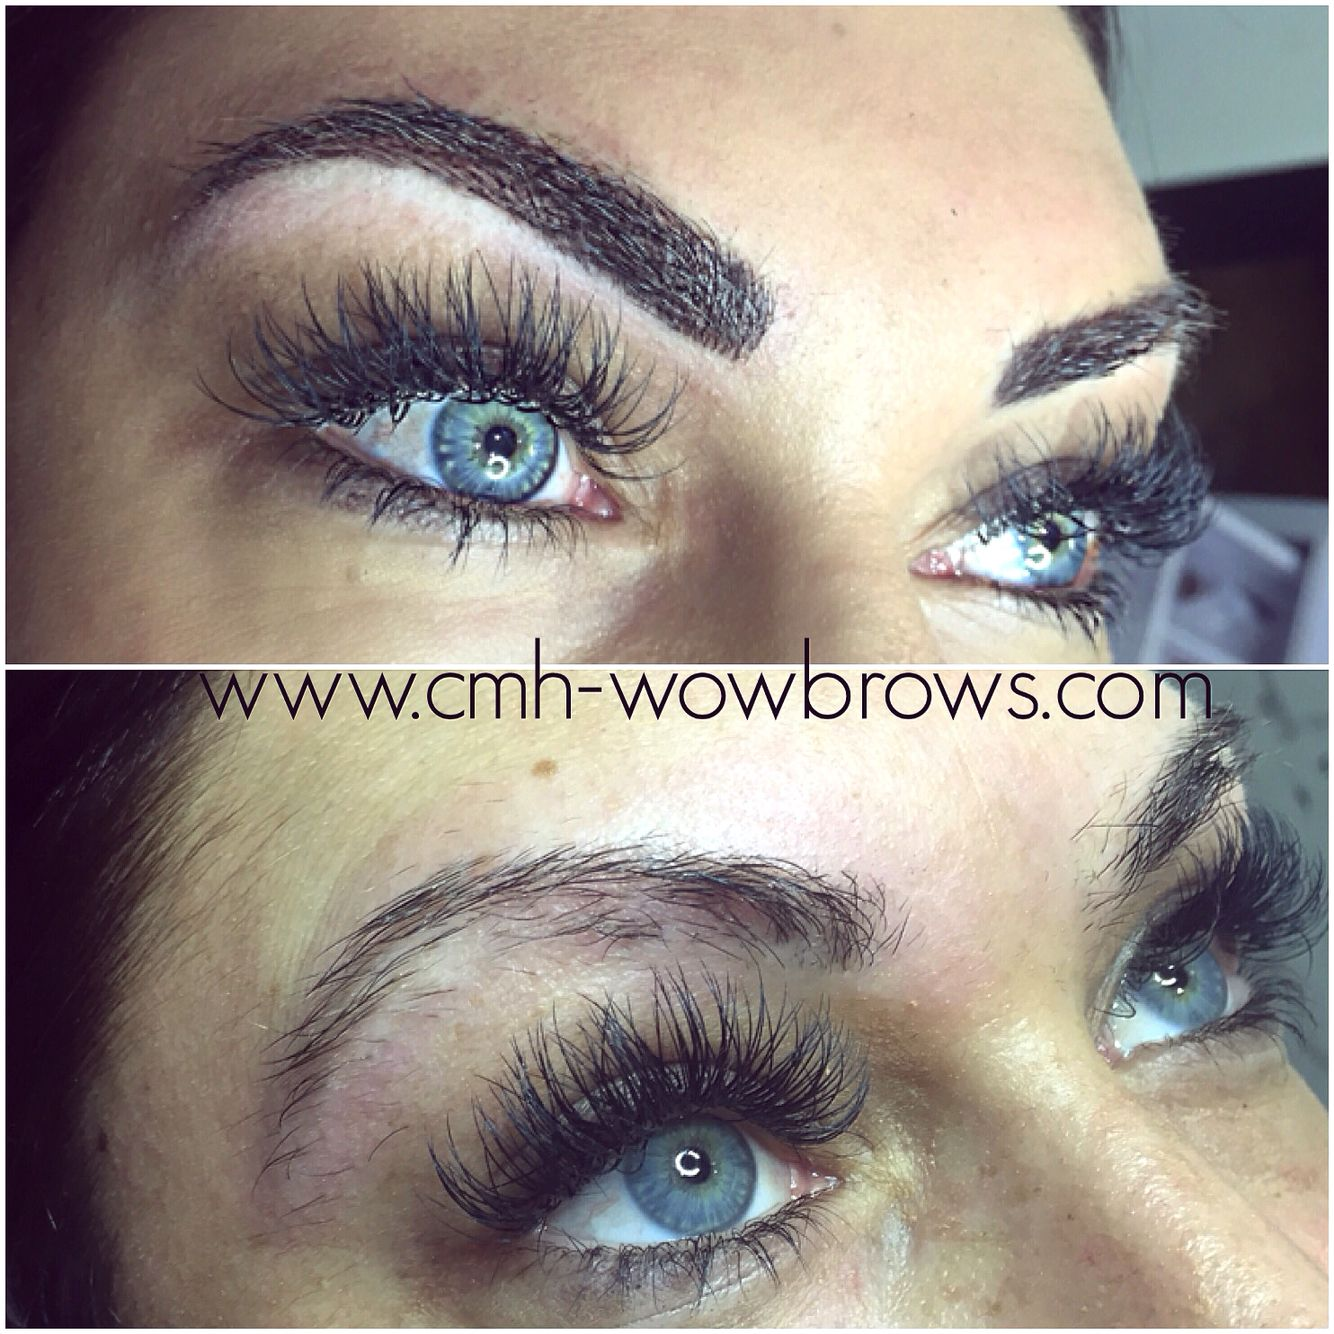 Microblading - feathering - feather touch brows - Microstroke - hair stroke - eyebrows - tattooing - tattooed brows